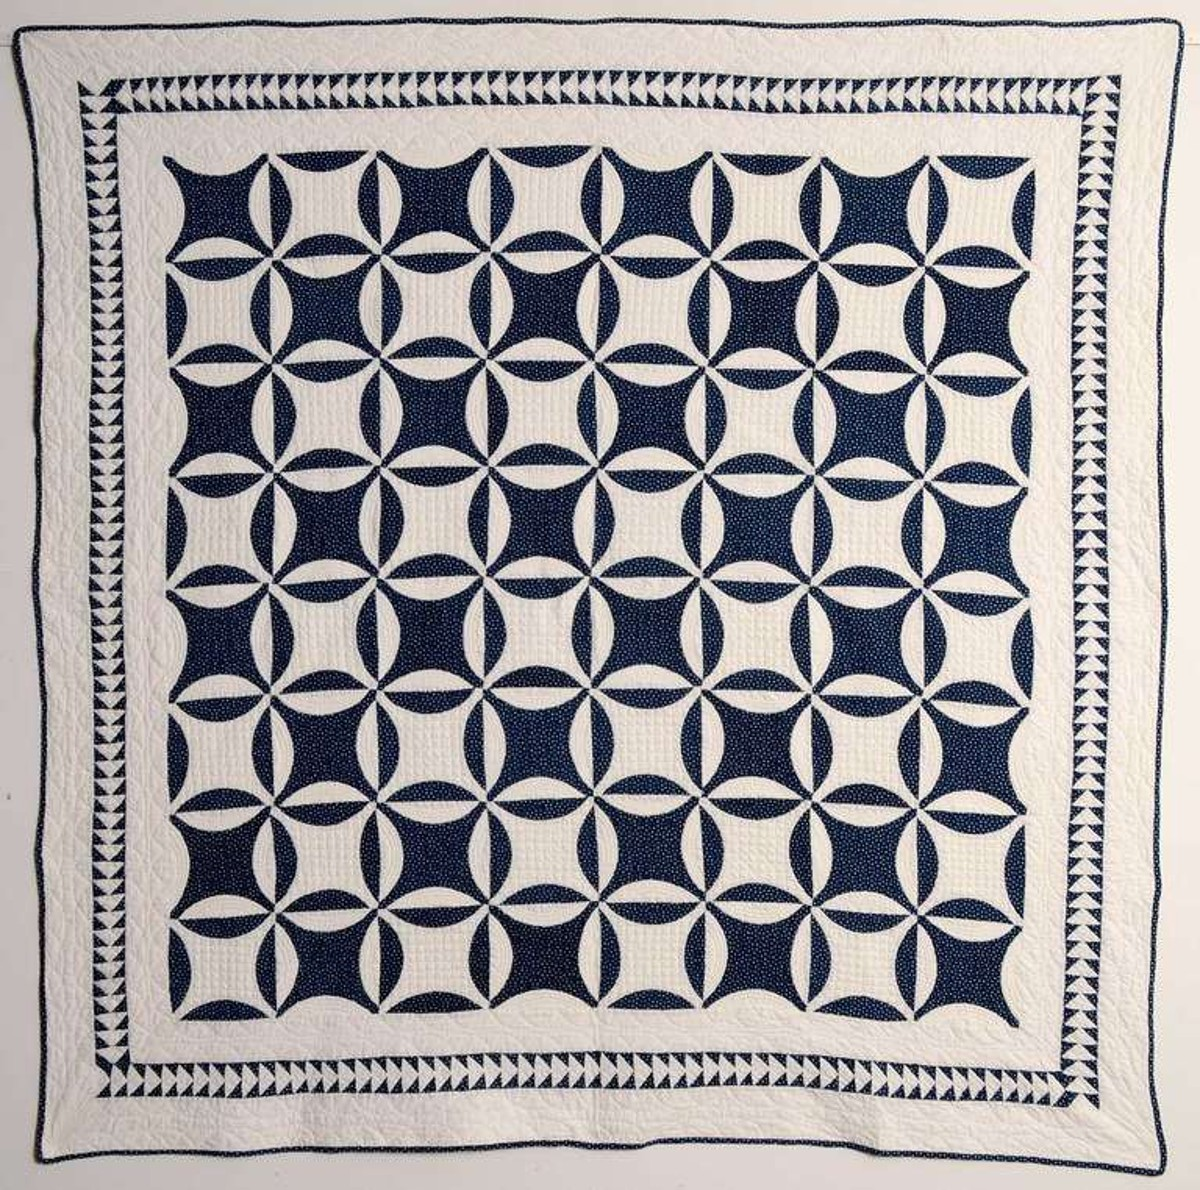 A blue and white Rob Peter to Pay Paul quilt